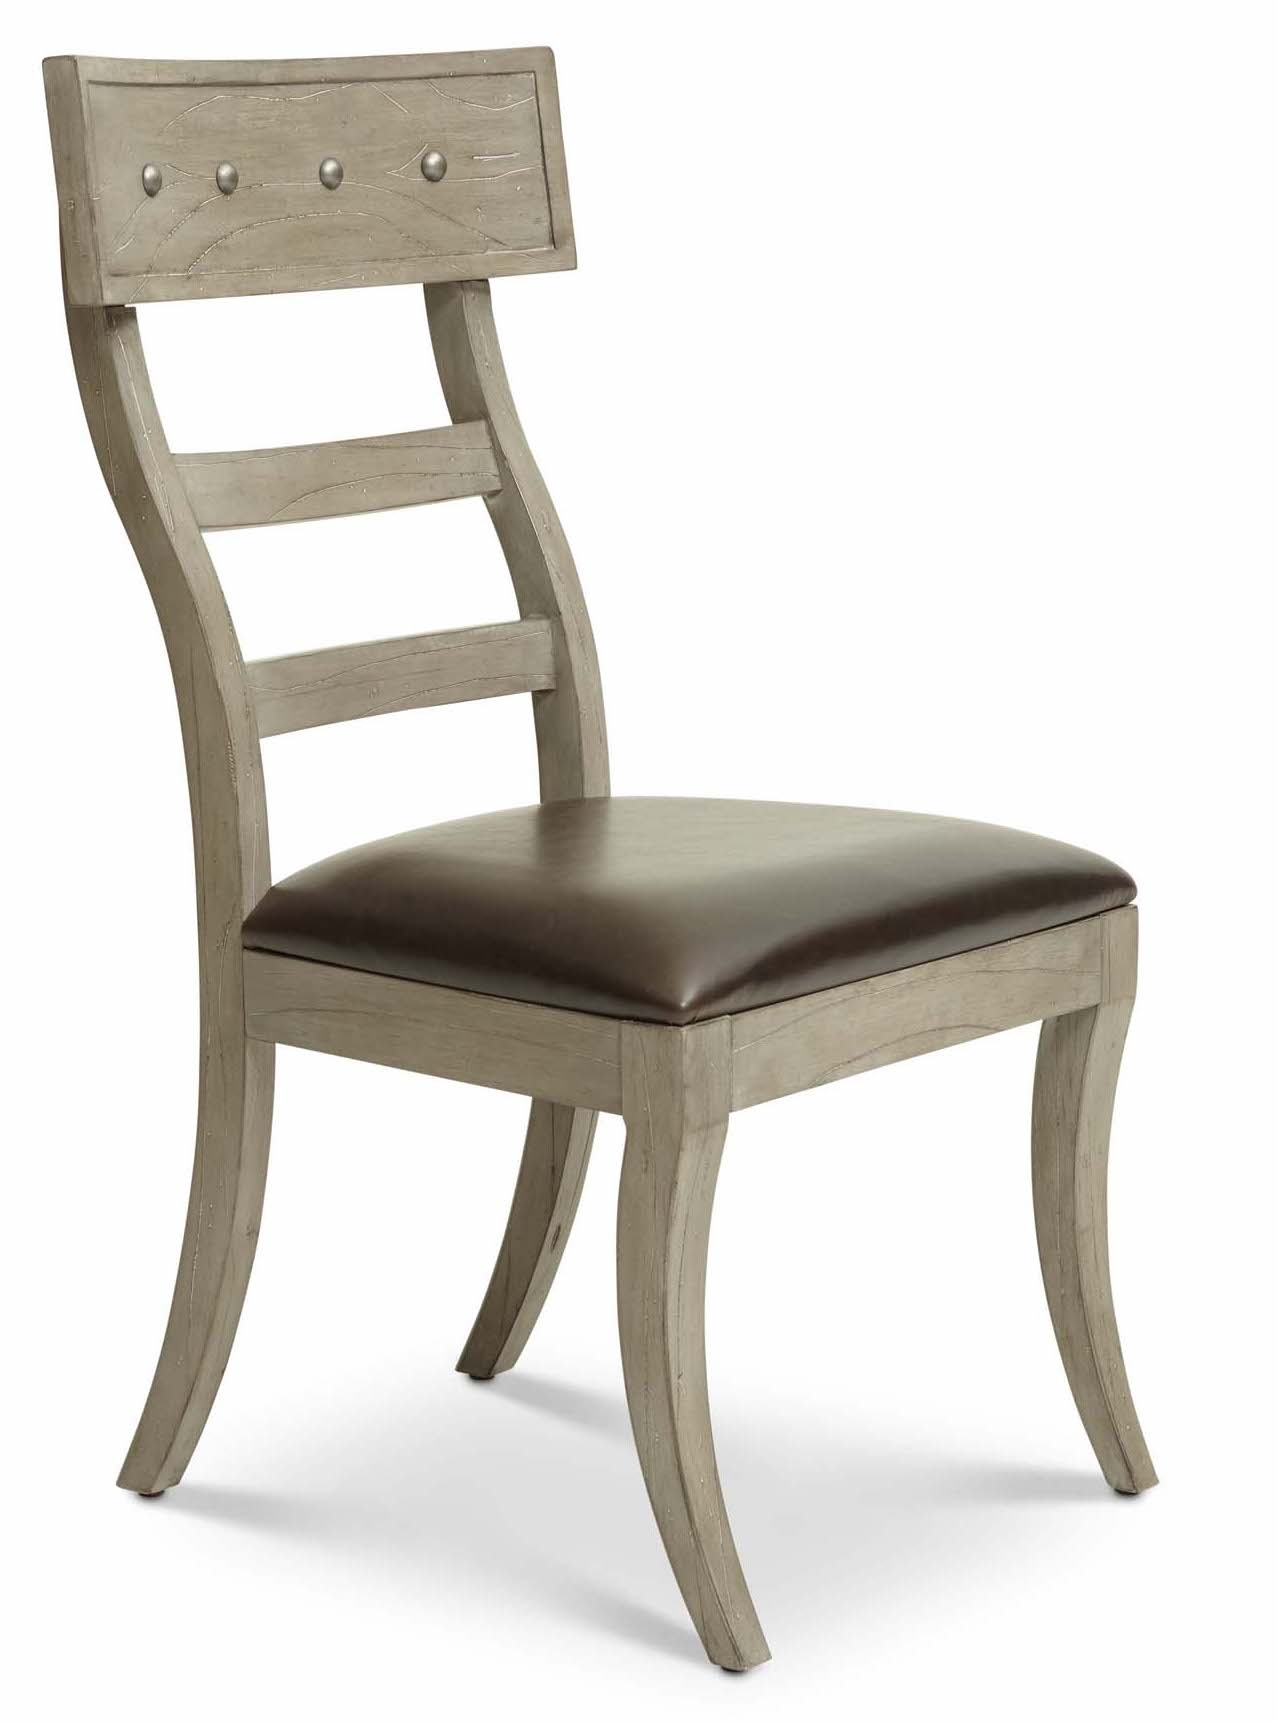 "Aspen Side Chair (2/carton)  Item: DI-167205 Dimensions: 22 x 25 x 41.5""H"